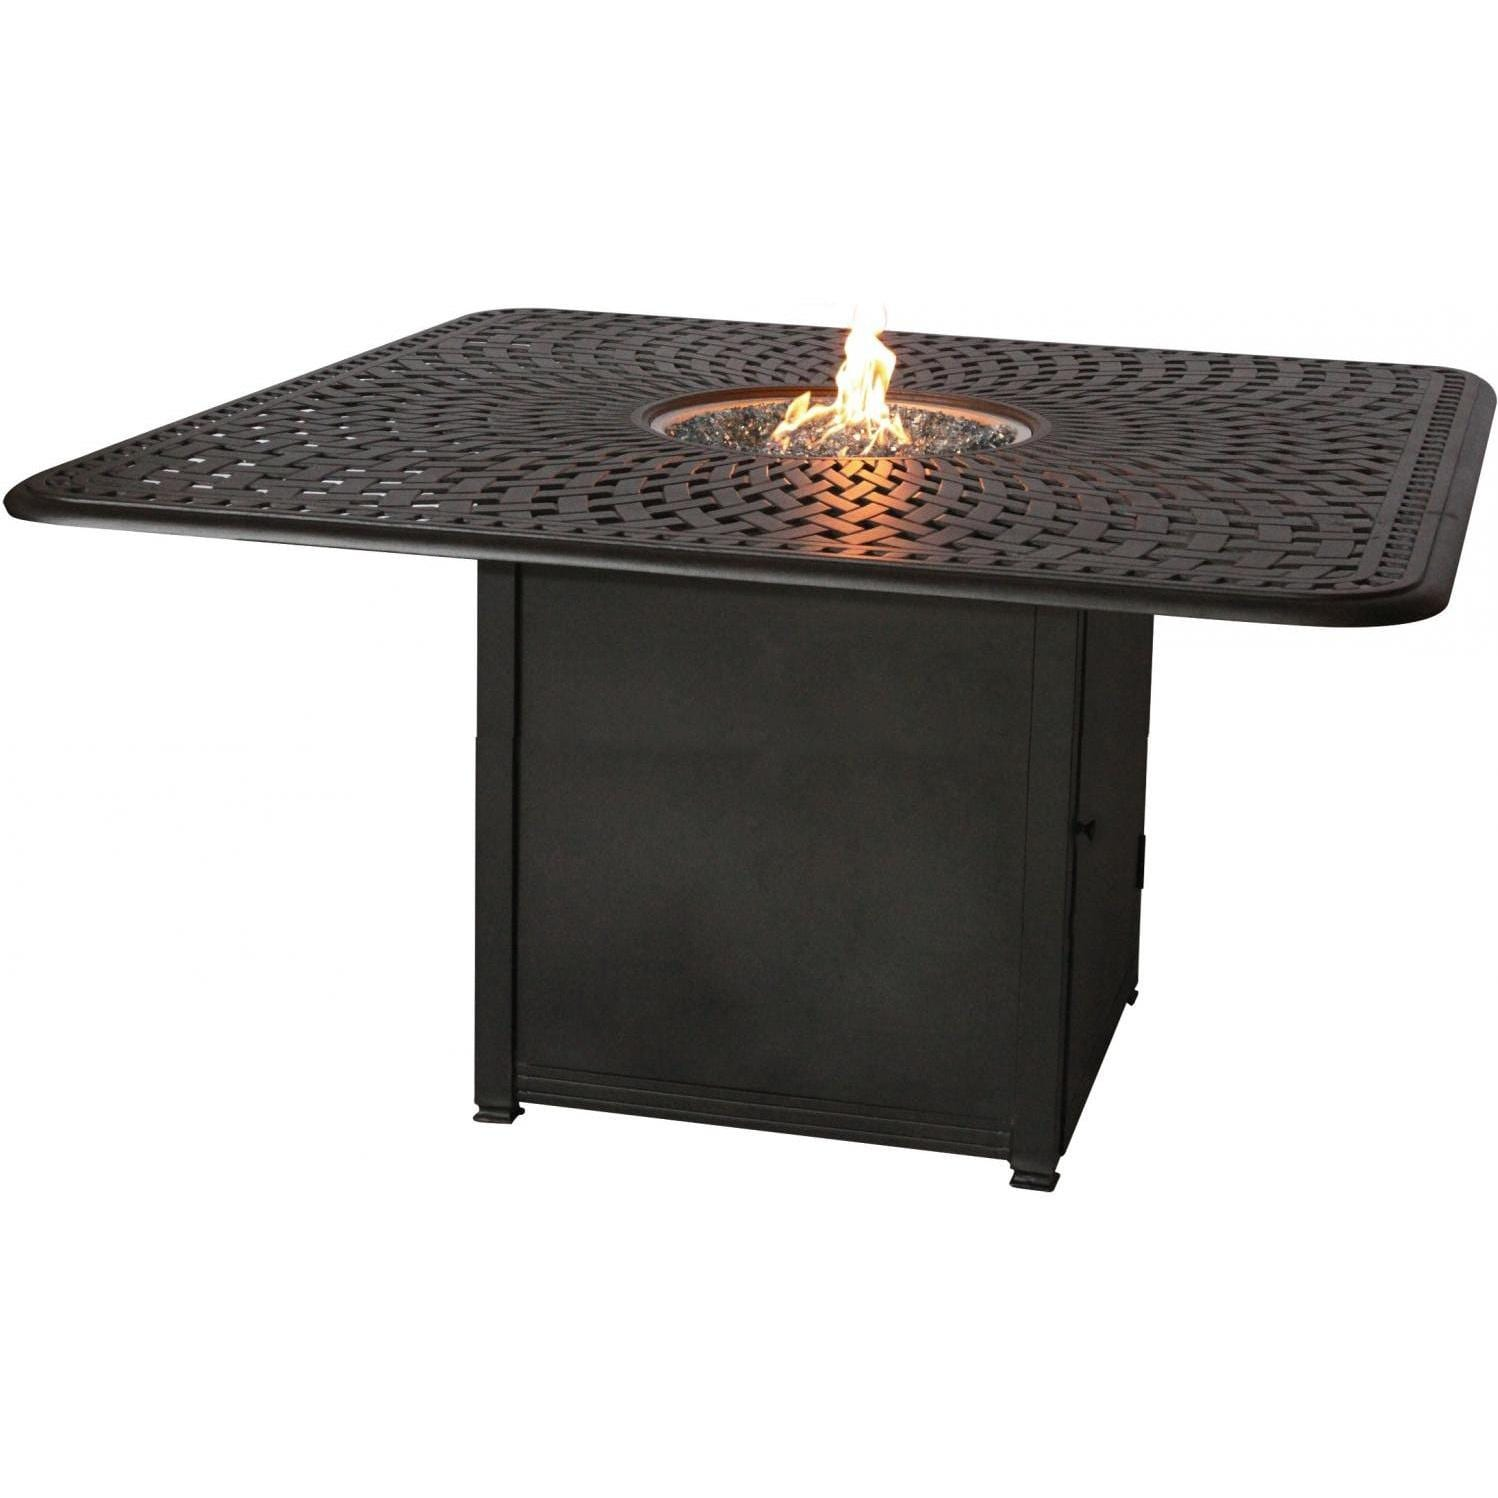 Darlee Signature Propane Fire Pit Dining Table